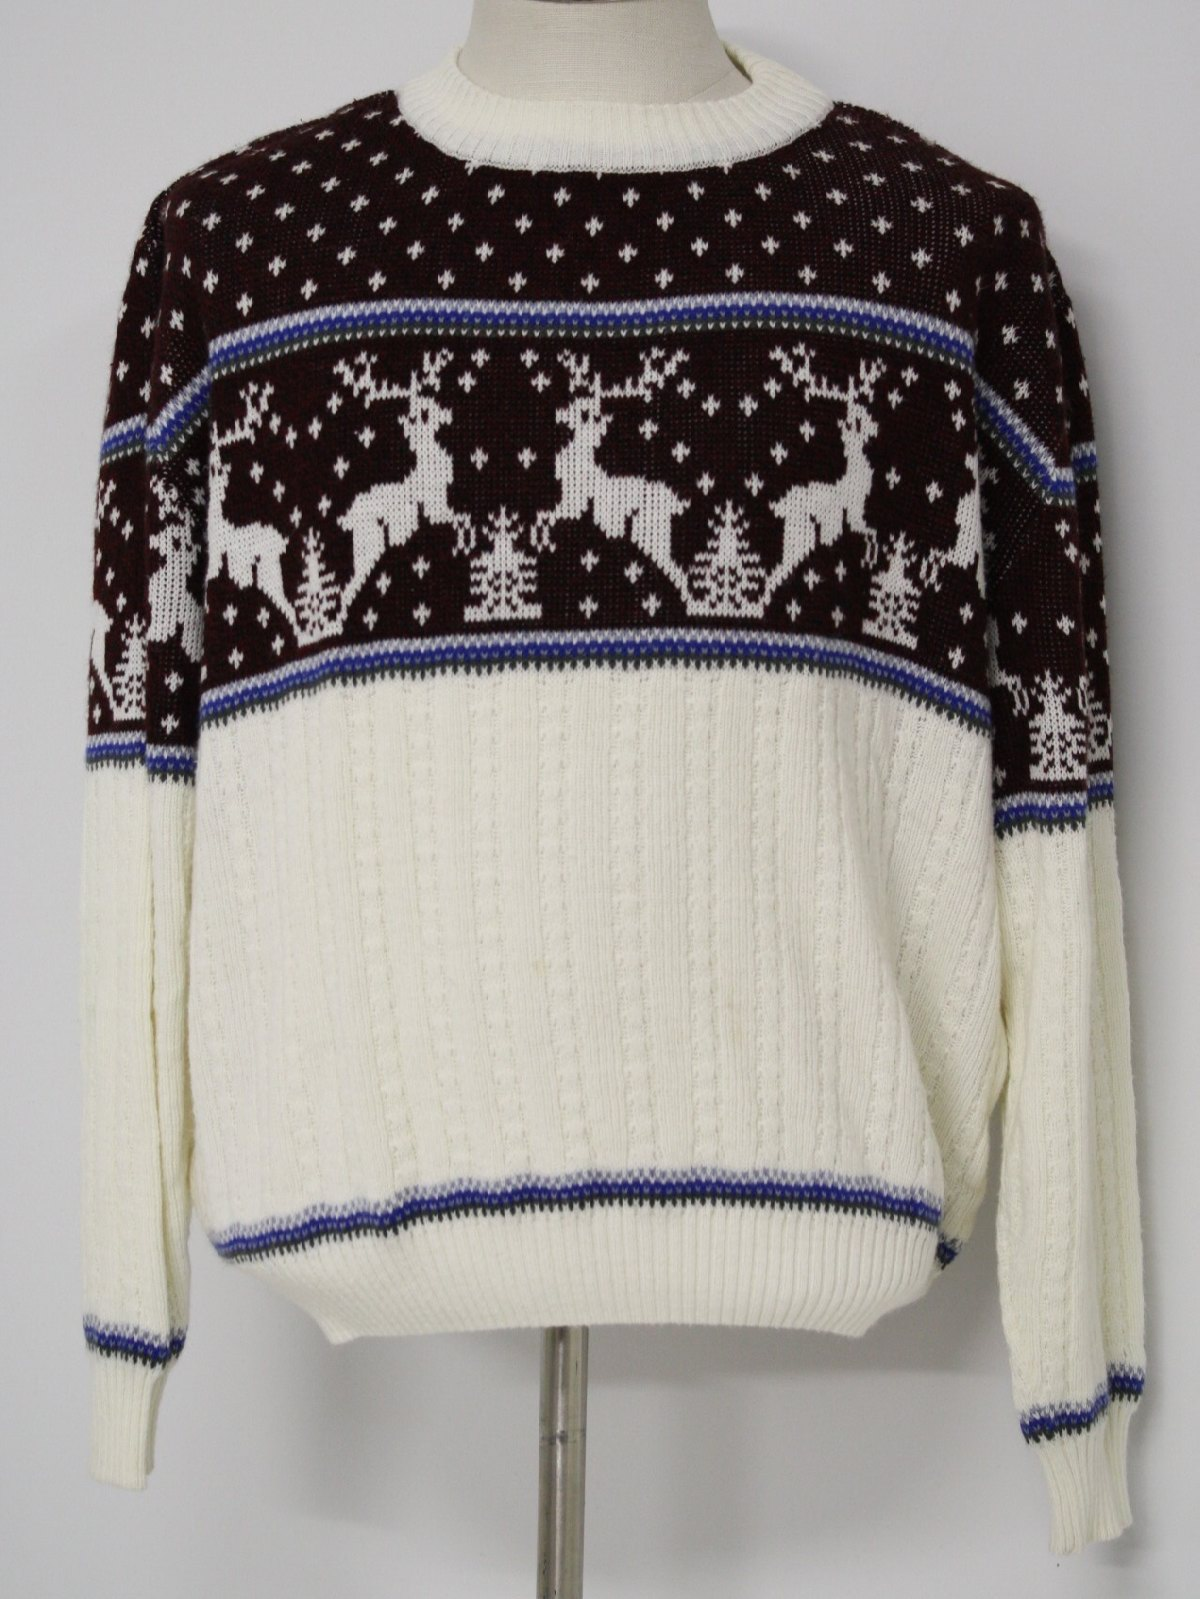 Retro Eighties Mens Cable Knit Christmas Ski Sweater: 80s -Flat ...